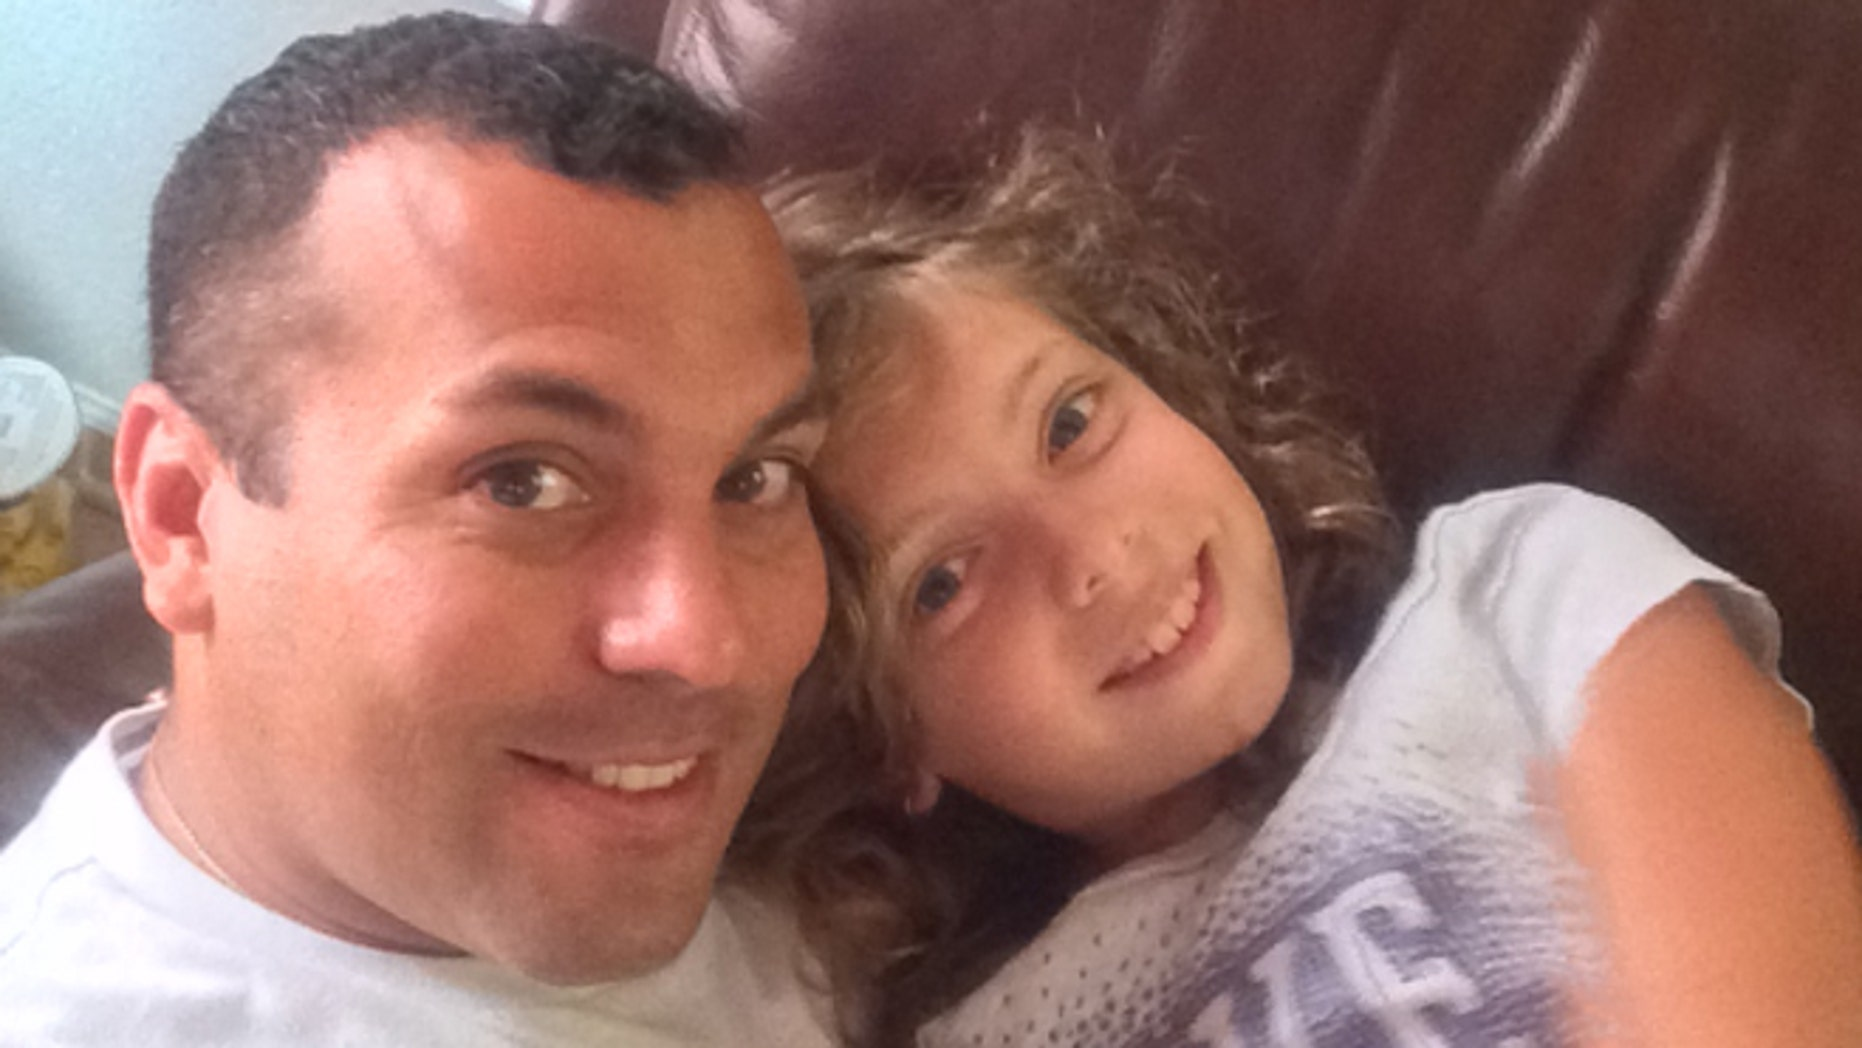 Nine-year-old Oceana Irizzary has died after being critically injured in the plane crash off Caspersen Beach in Venice, along with her father, 36-year old Sgt. 1st Class Ommy Irizarry.